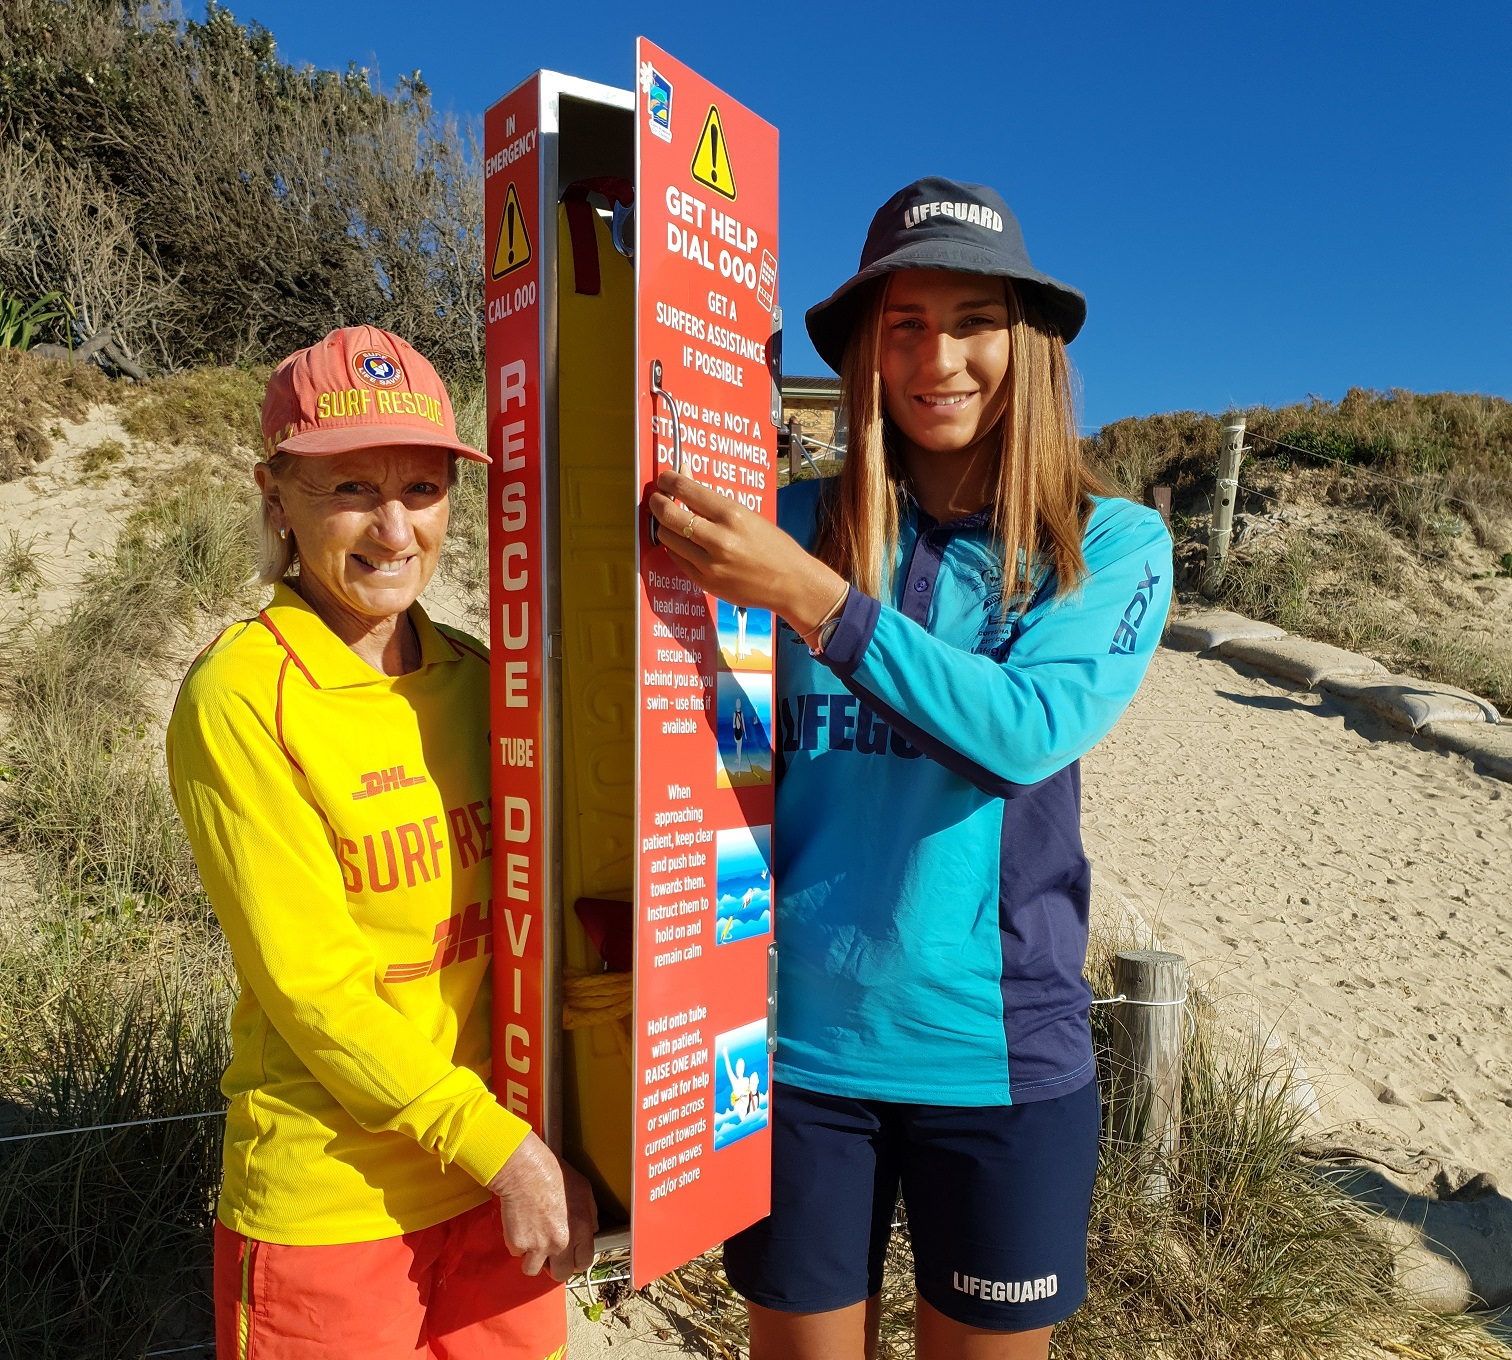 Rescue Tubes - Sheena McTackett, President of the Sawtell SLSC, and Maddi Carah, CHCC lifeguard